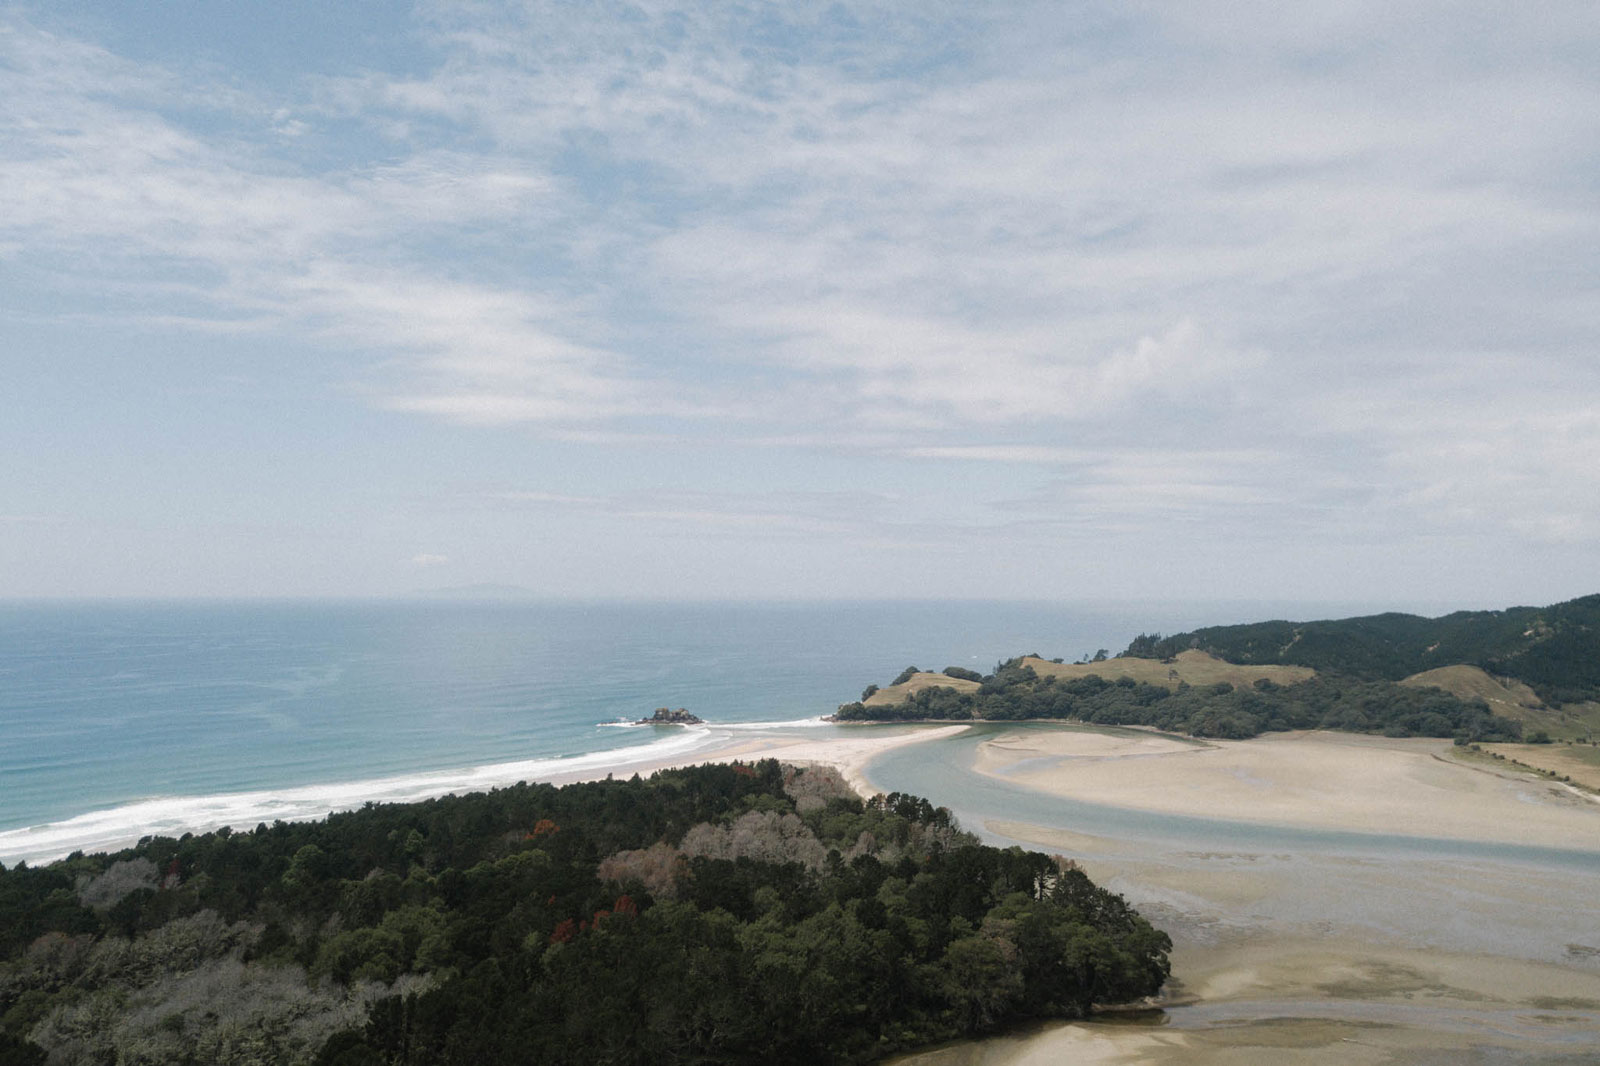 newfound-a-b-opoutere-coastal-camping-coromandel-wedding-wedding-photographer-23